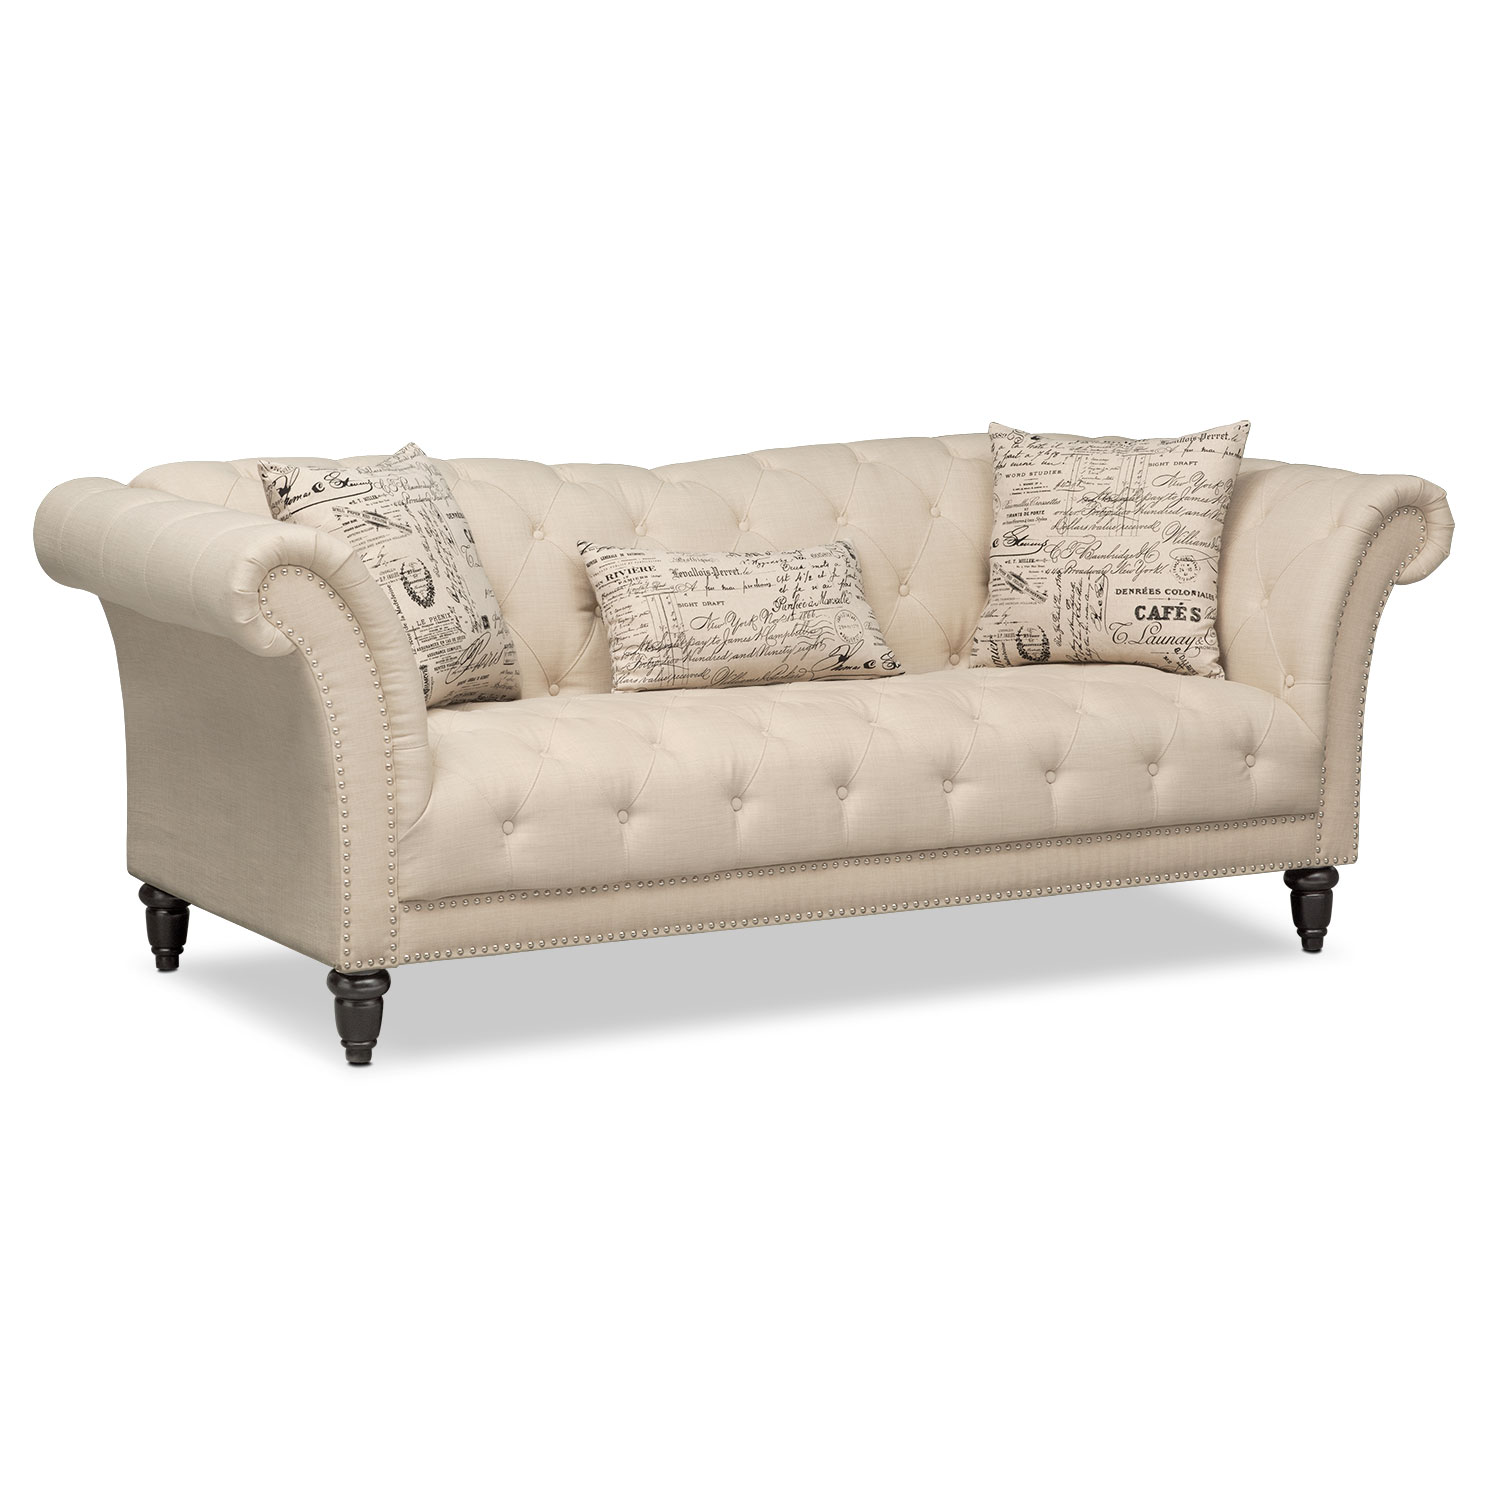 Merveilleux Living Room Furniture   Marisol Sofa   Beige